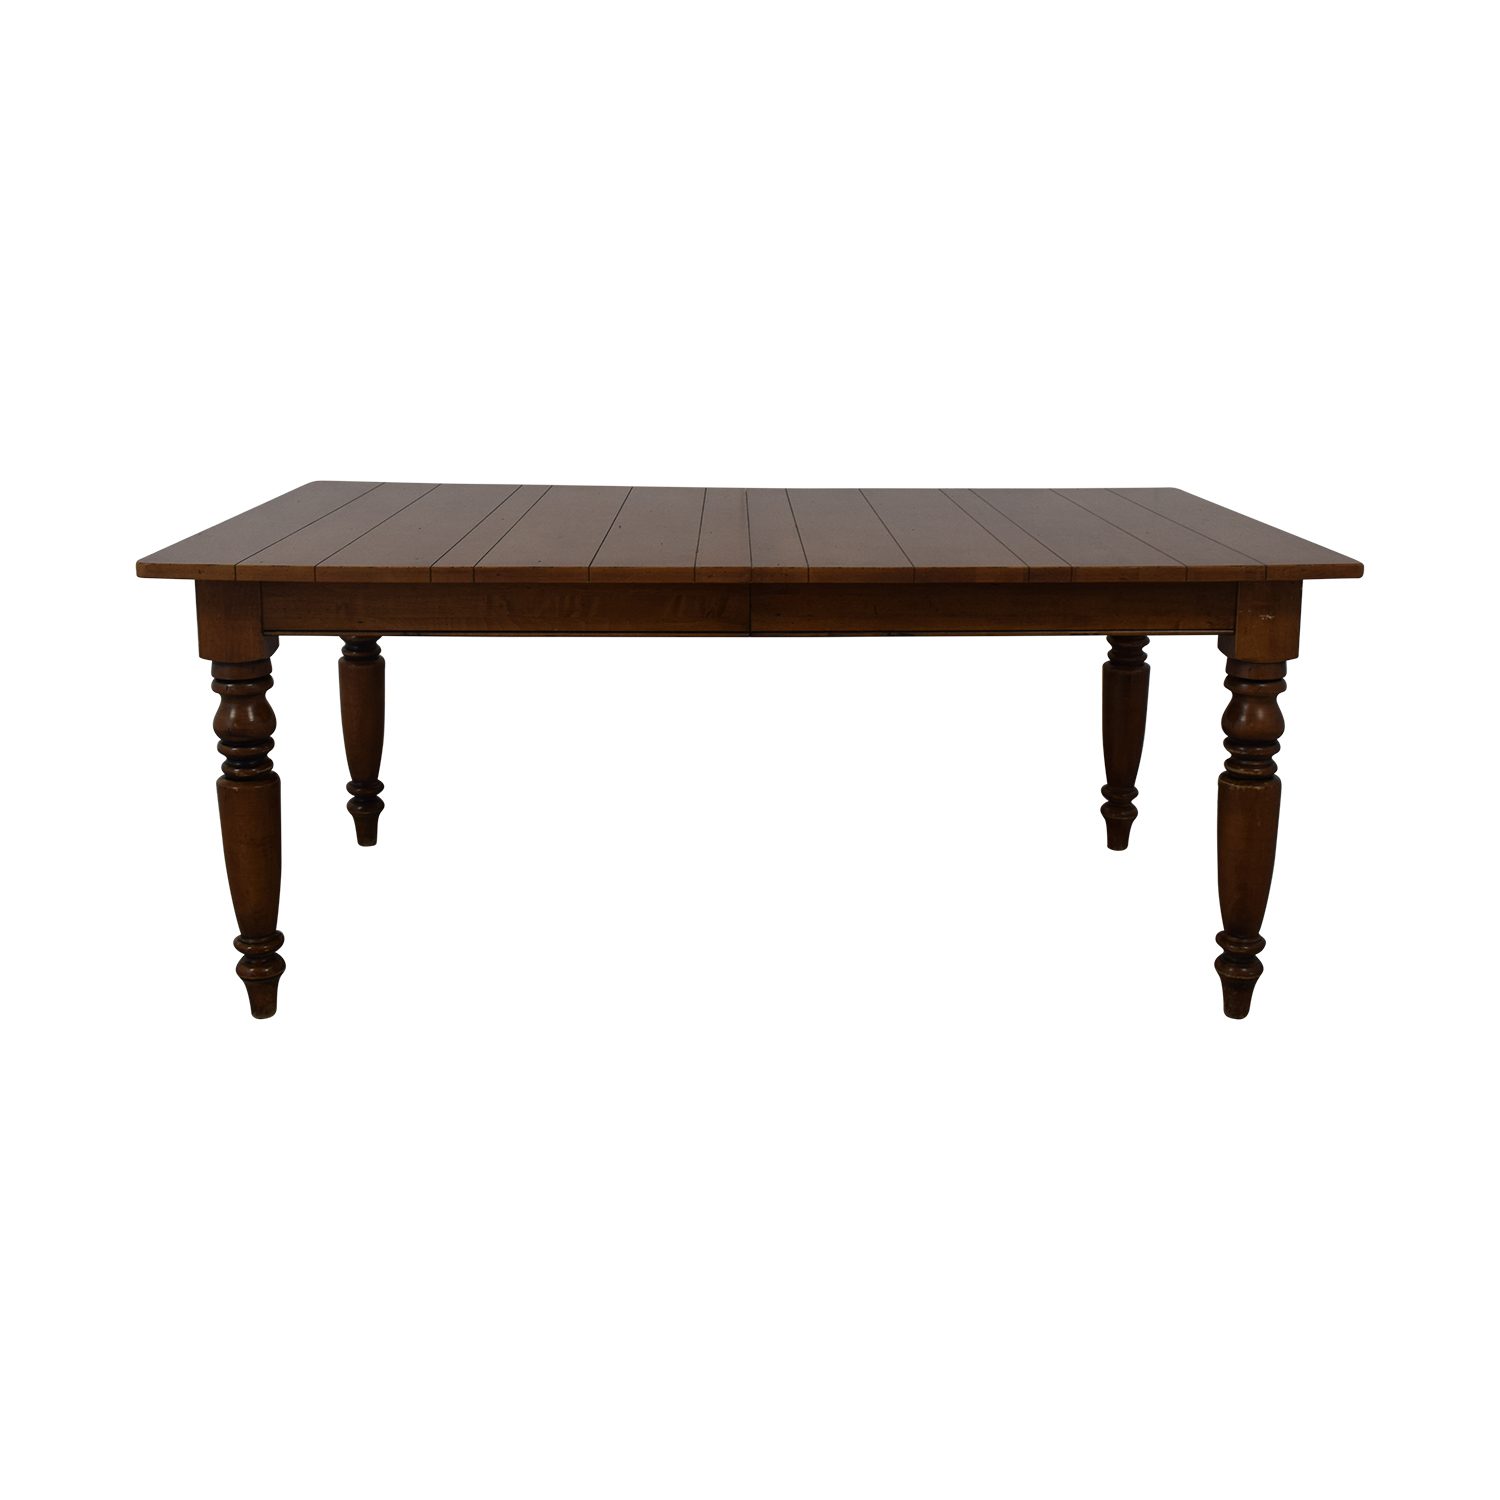 Ethan Allen Miller Dining Room Table / Tables